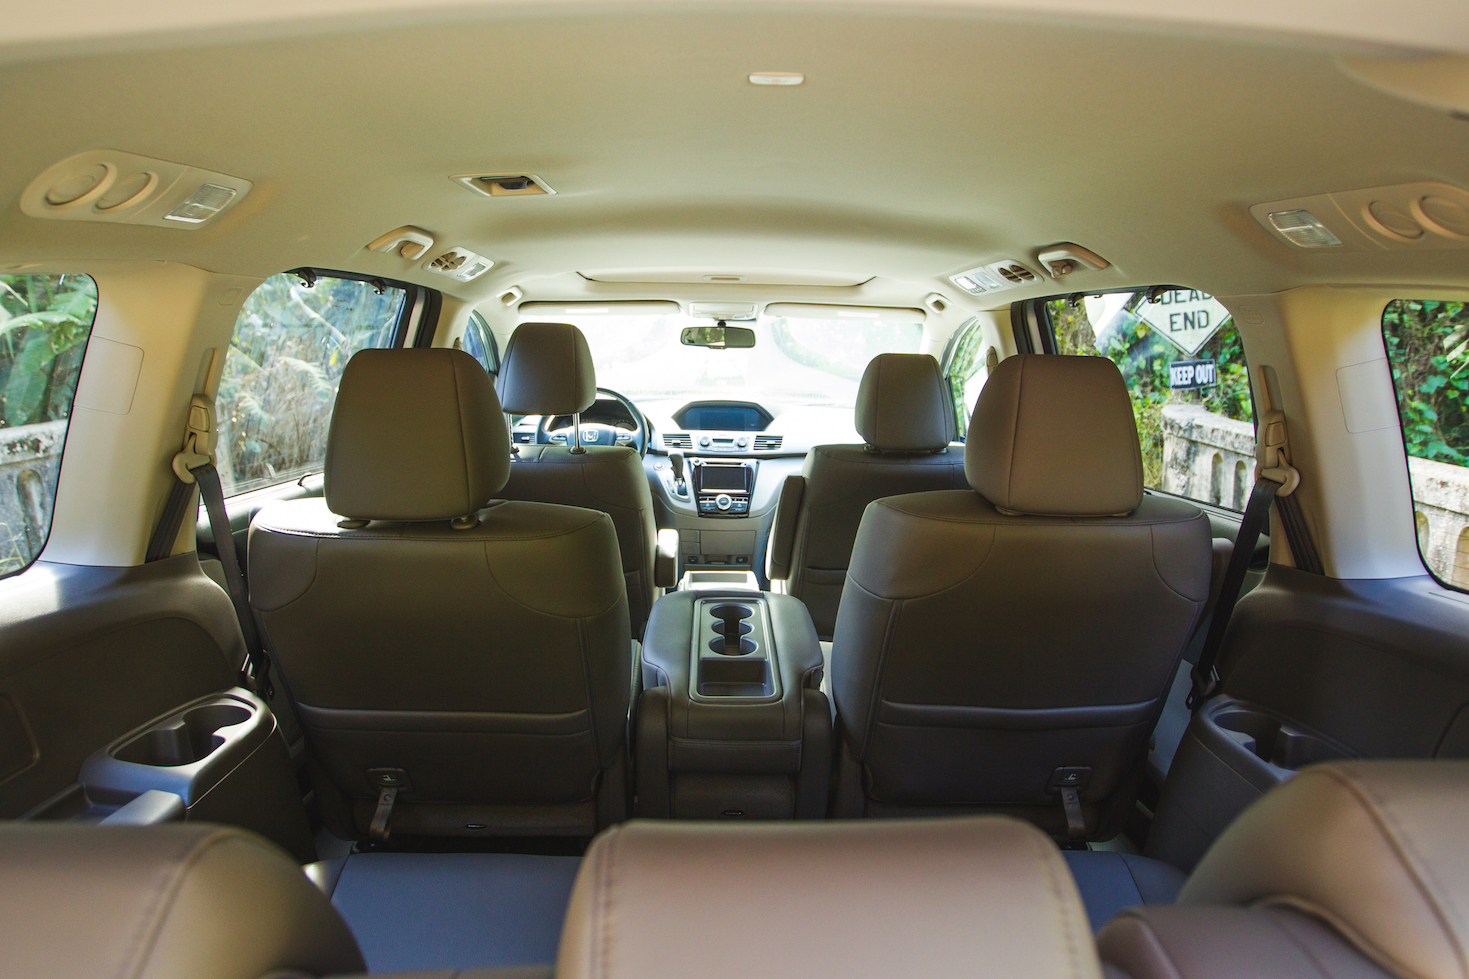 inside-tour-van-local-maui-tours